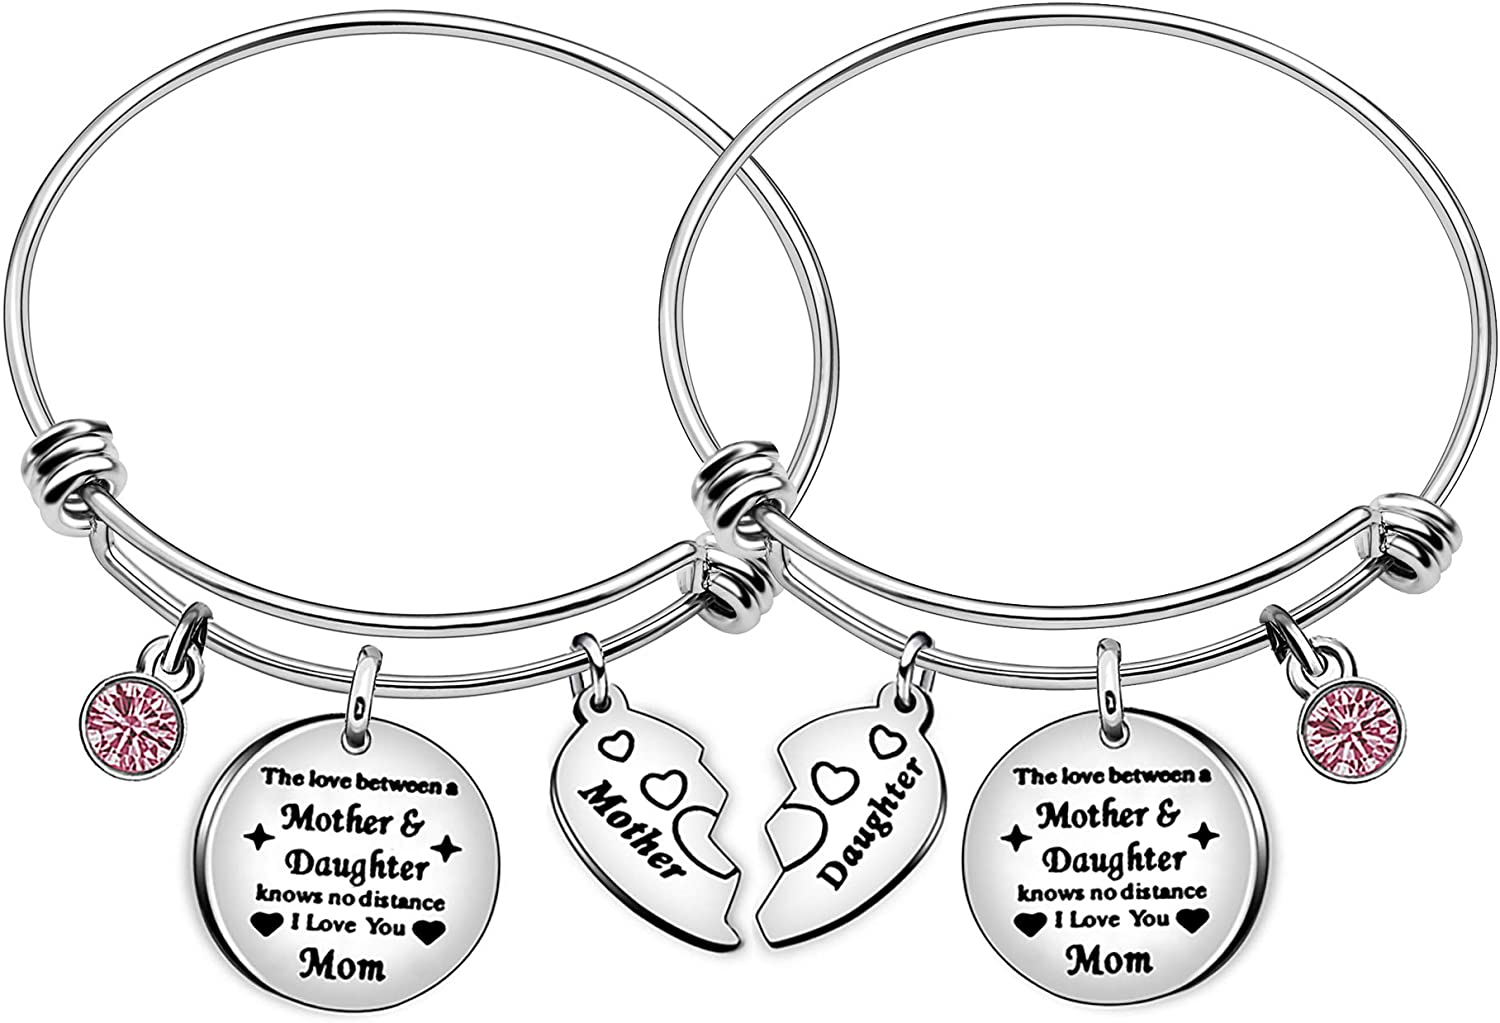 Mother Daughter Heart Charm Bangle Family Gift Adjustable Bracelet Women Girl Jewelry - The Love Between Mother and Daughter Knows No Distance I Love You Mom